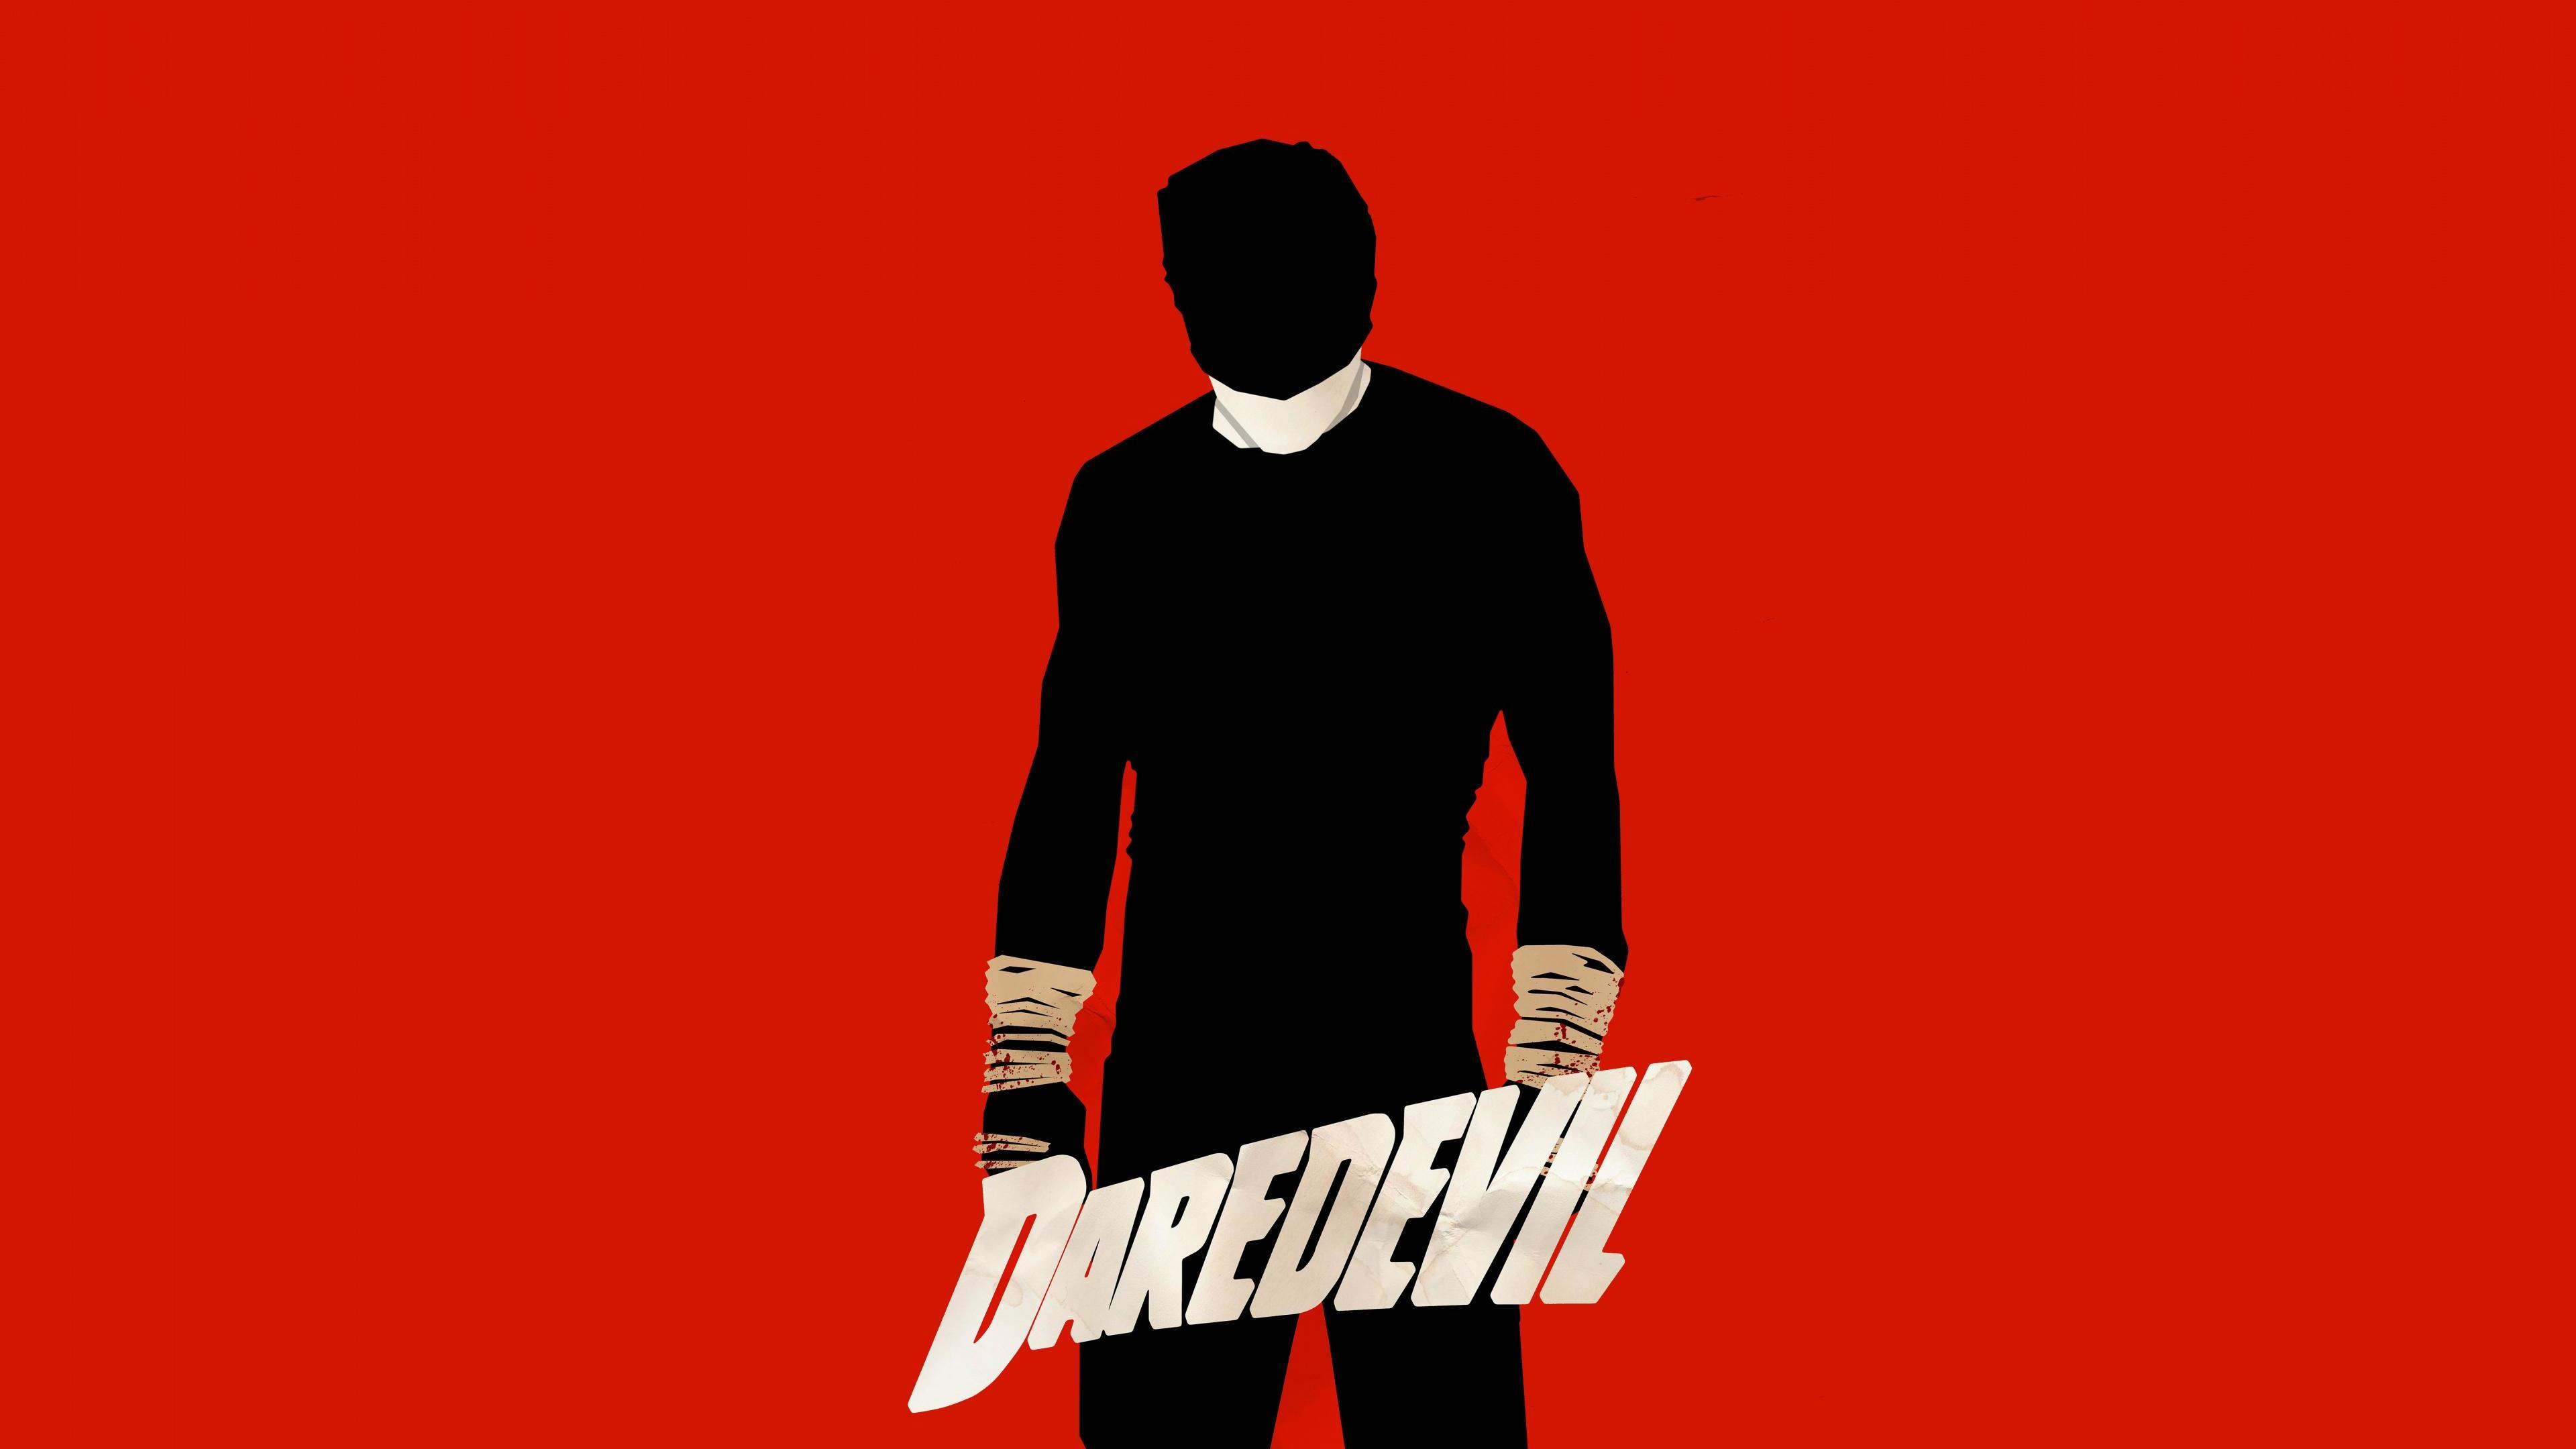 daredevil abstract art 4k 1547319551 - Daredevil Abstract Art 4k - superheroes wallpapers, digital art wallpapers, daredevil wallpapers, artwork wallpapers, artist wallpapers, 4k-wallpapers